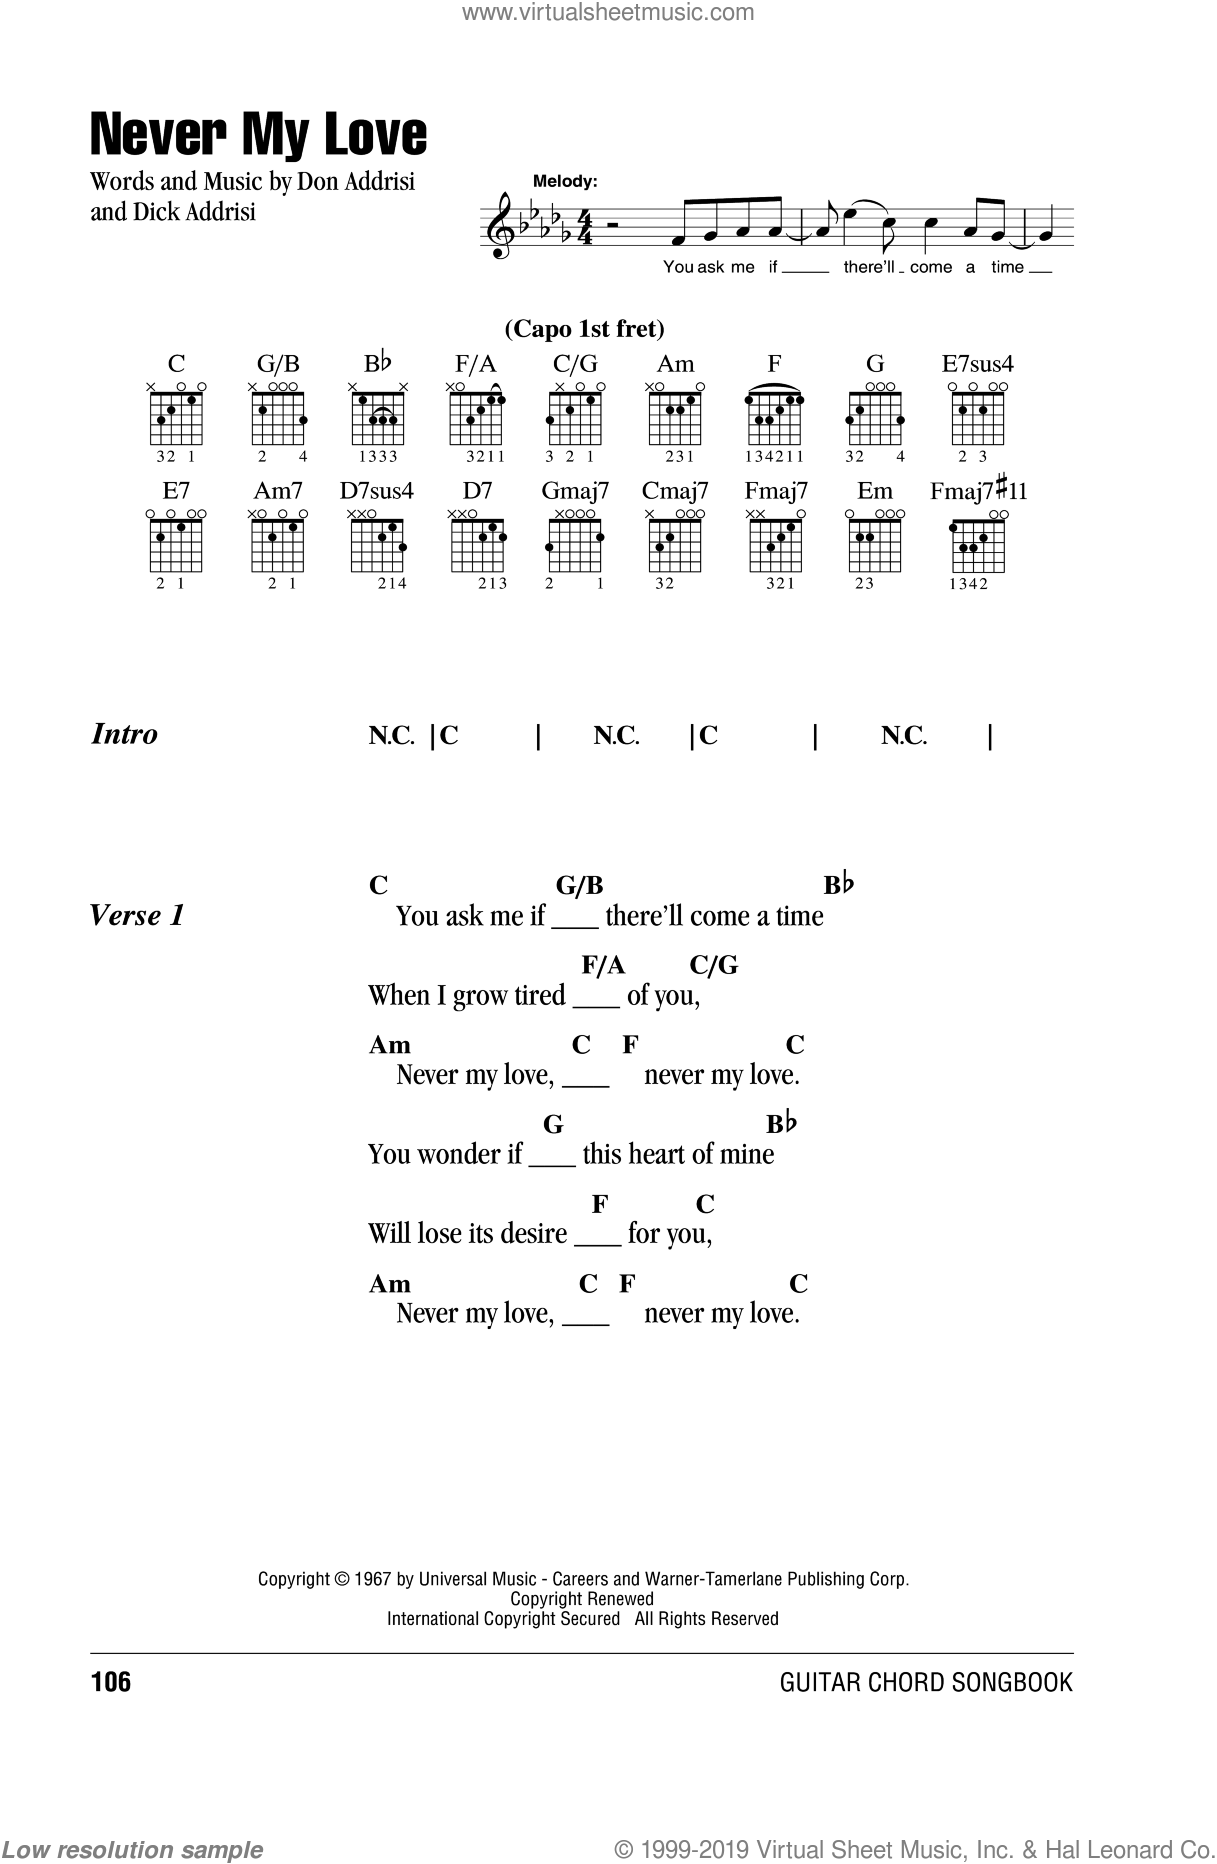 Never My Love sheet music for guitar (chords, lyrics, melody) by Don Addrisi